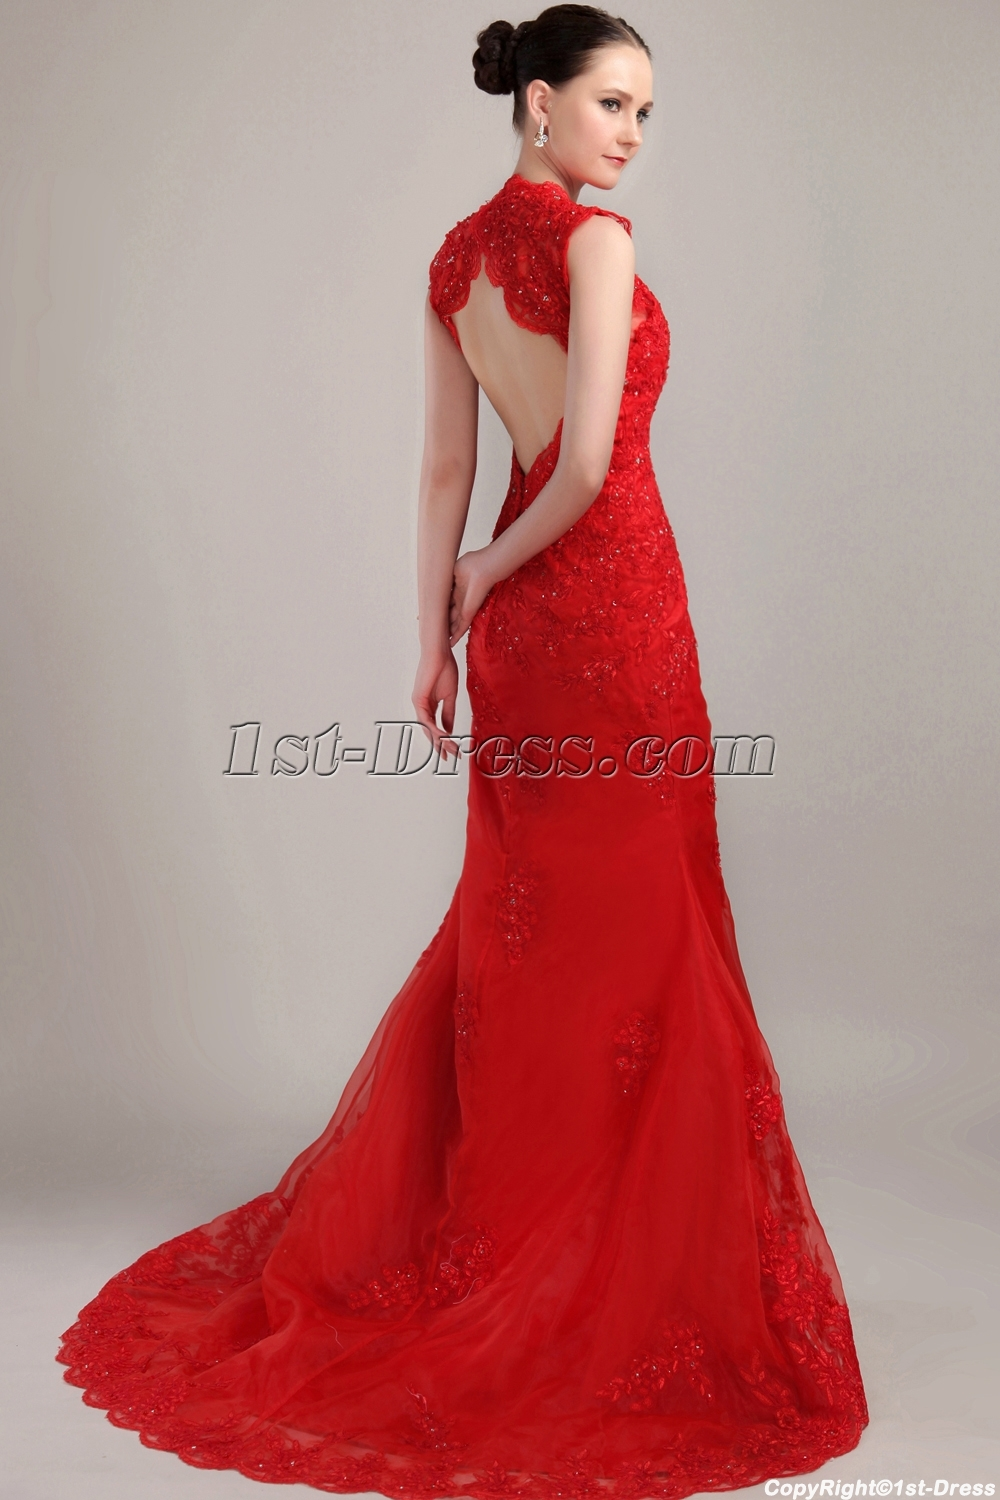 images/201304/big/Sheath-Red-2013-Bridal-Gowns-with-Keyhole-IMG_3162-1053-b-1-1366114079.jpg